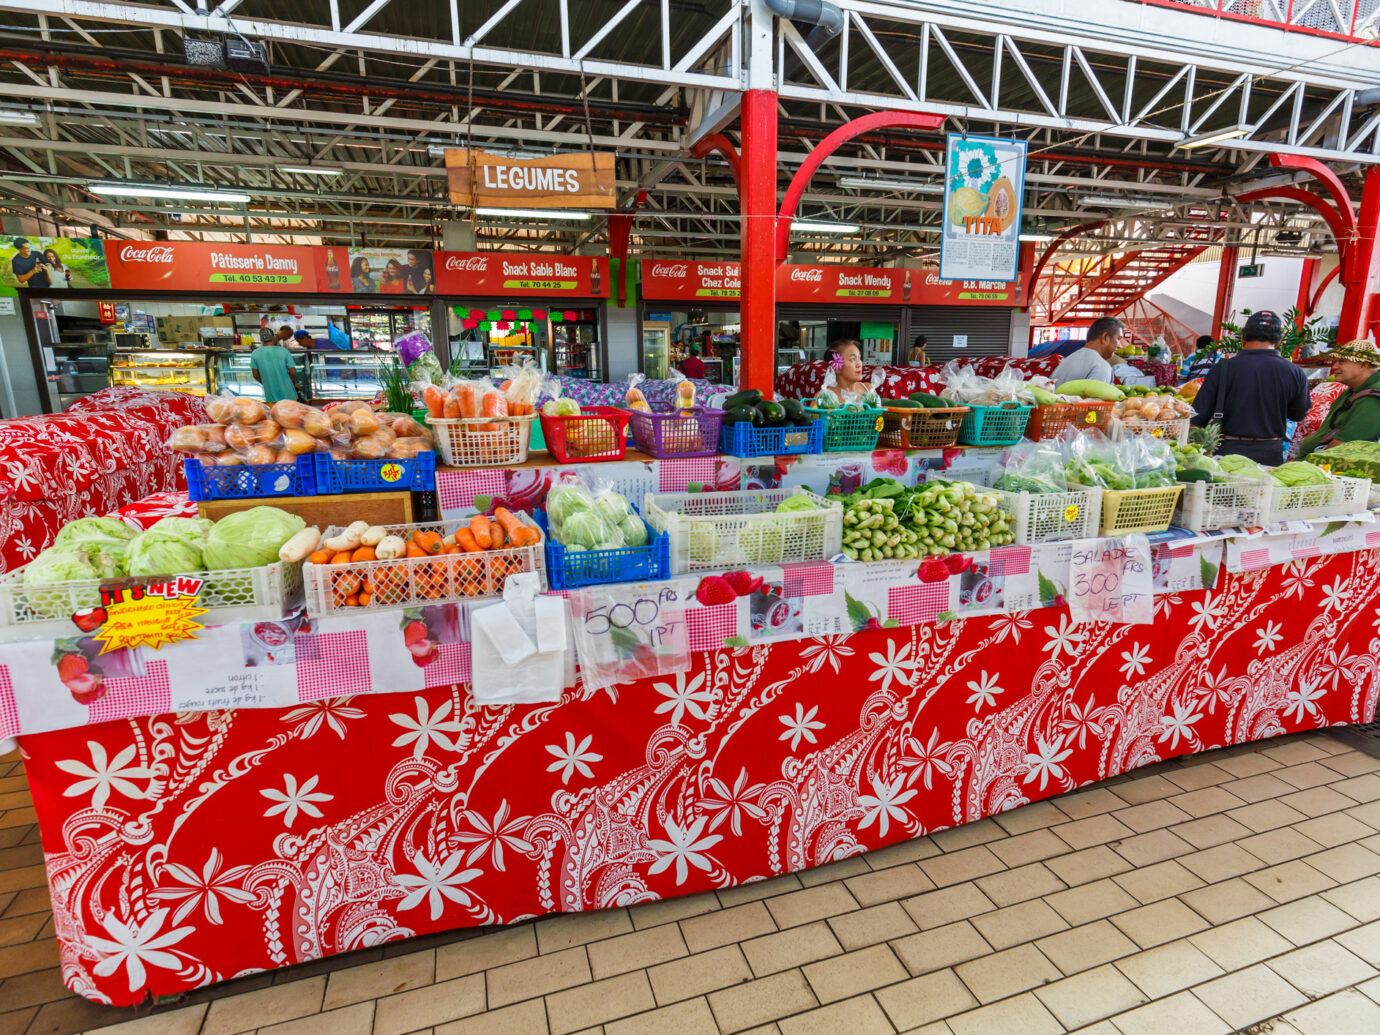 The fresh market in the town of Papeete early in the morning in Tahiti Papeete, French Polynesia.